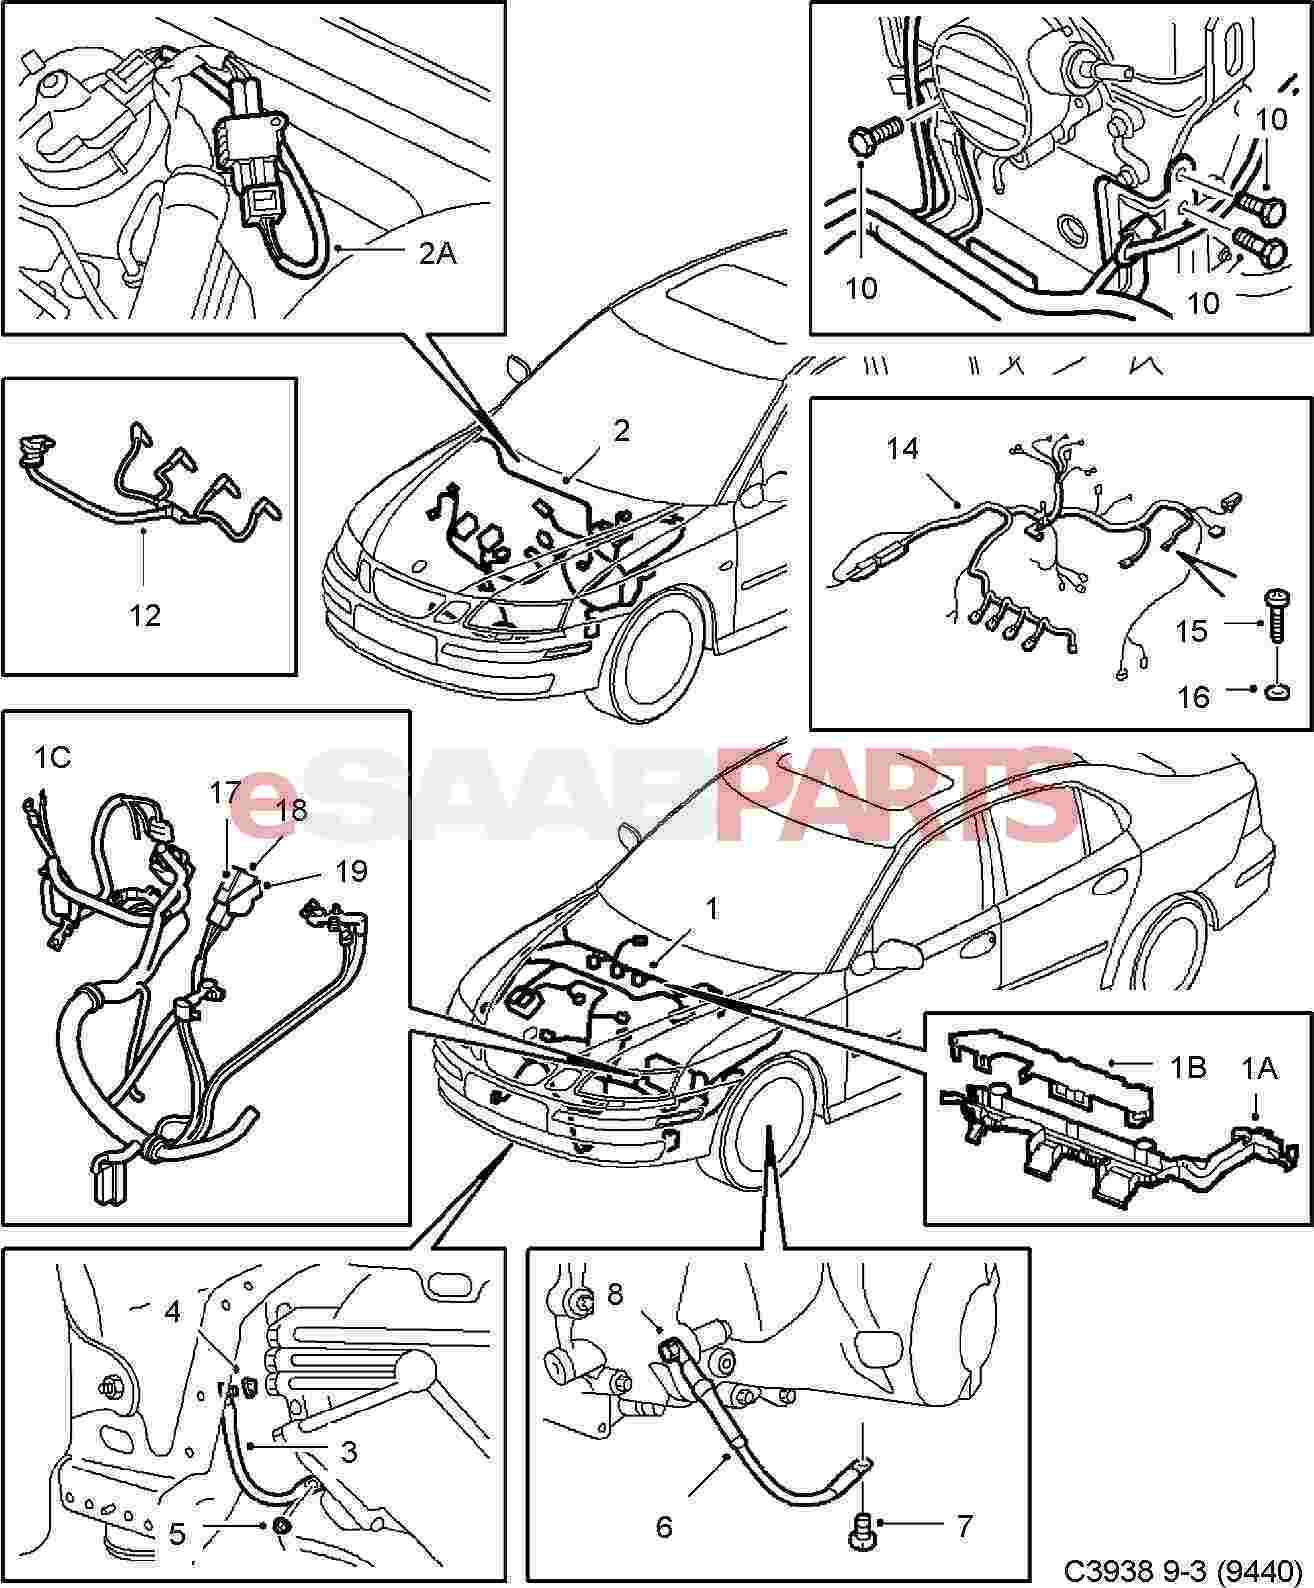 2001 saab 9 3 engine diagram